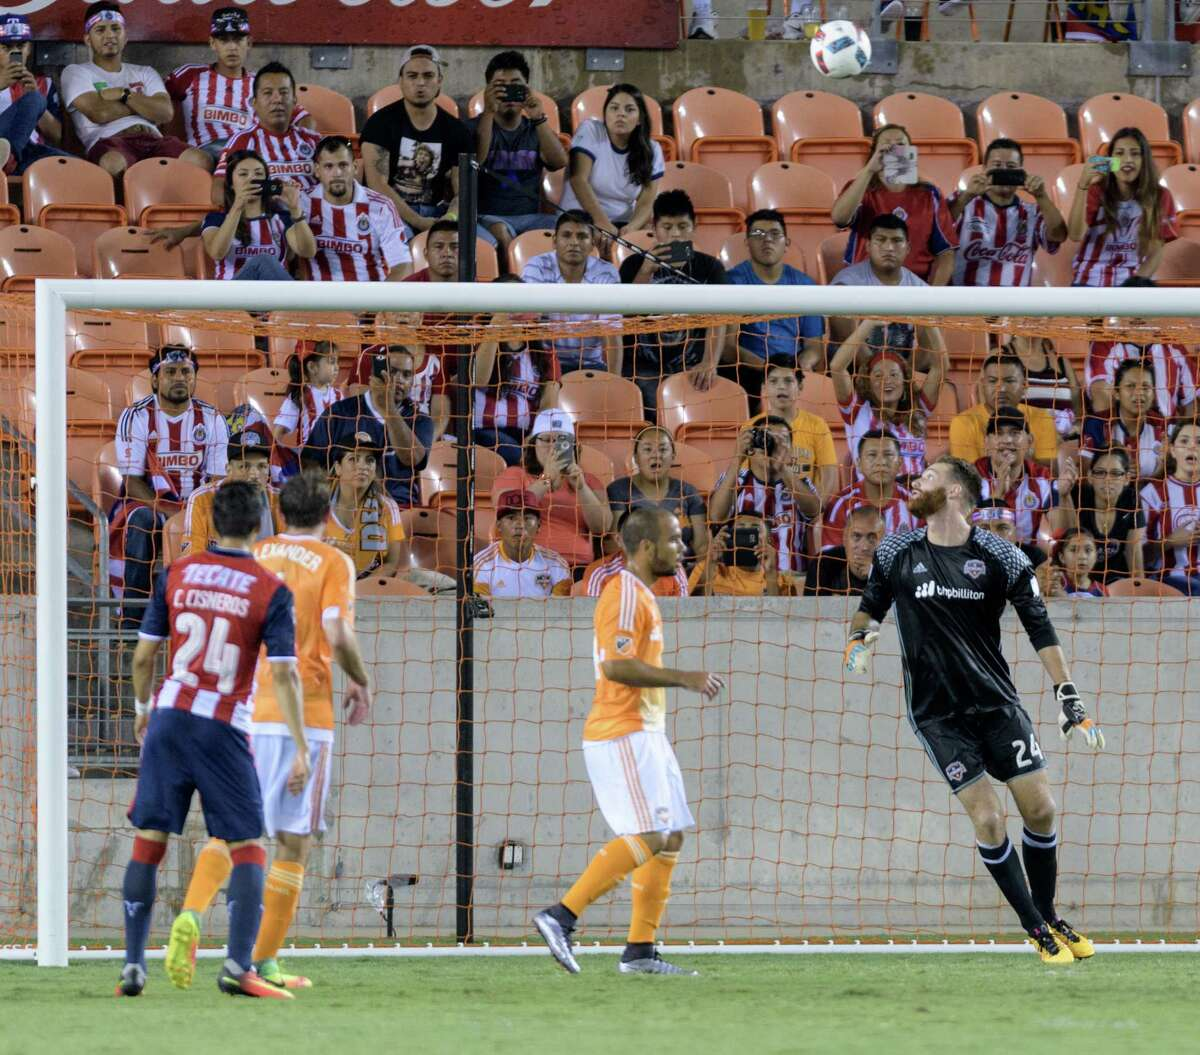 Houston Dynamo Goalkeeper, Calle Brown (24) watches a C. D. Guadalajara kick go over the goal in a friendly soccer match on Sunday, September 4, 2016 at BBVA Compass Stadium in Houston Texas.